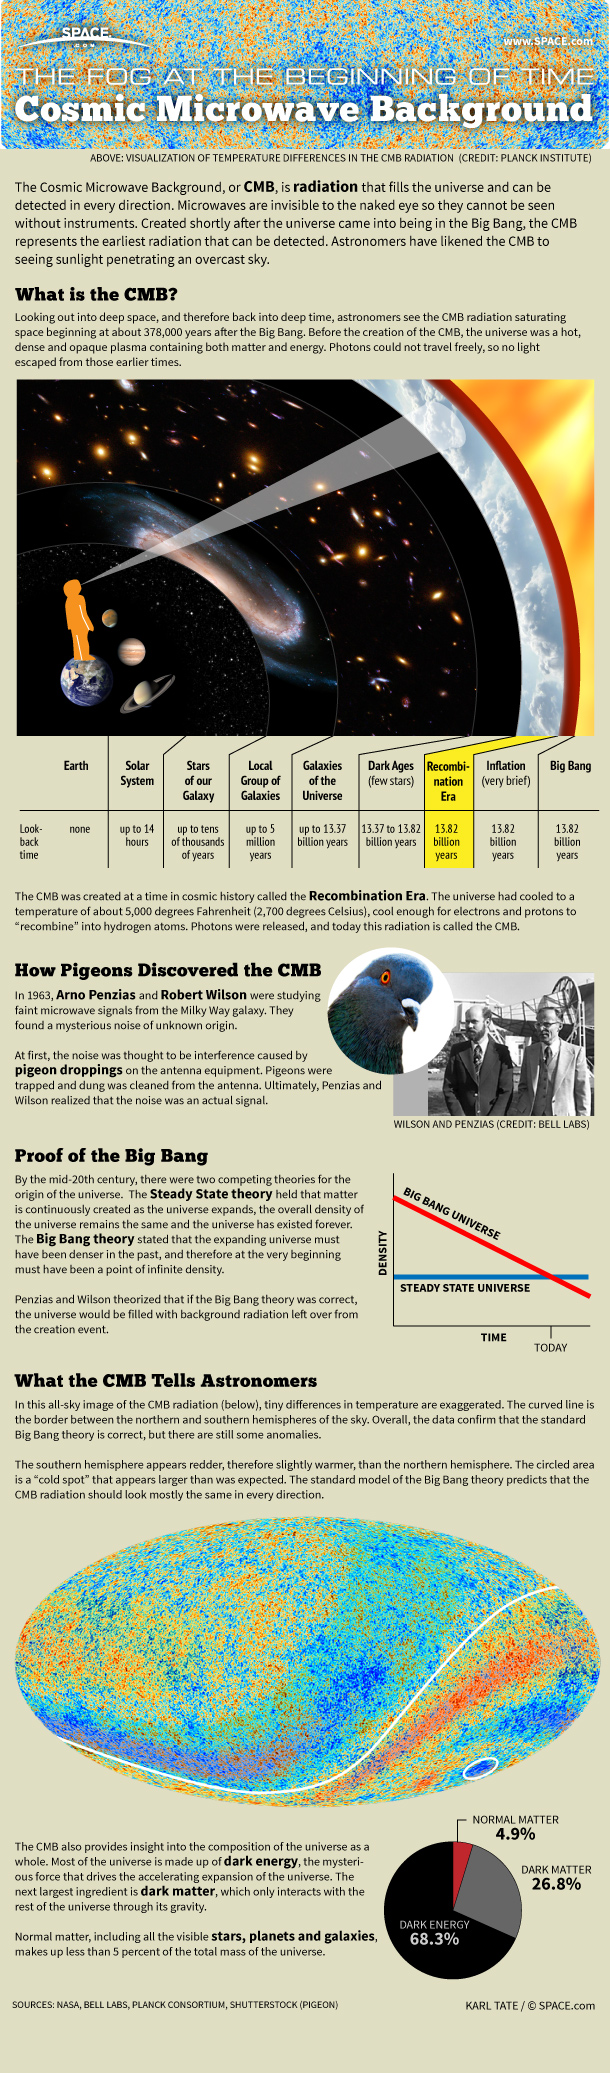 Cosmic Microwave Background: Big Bang Relic Explained (Infographic)